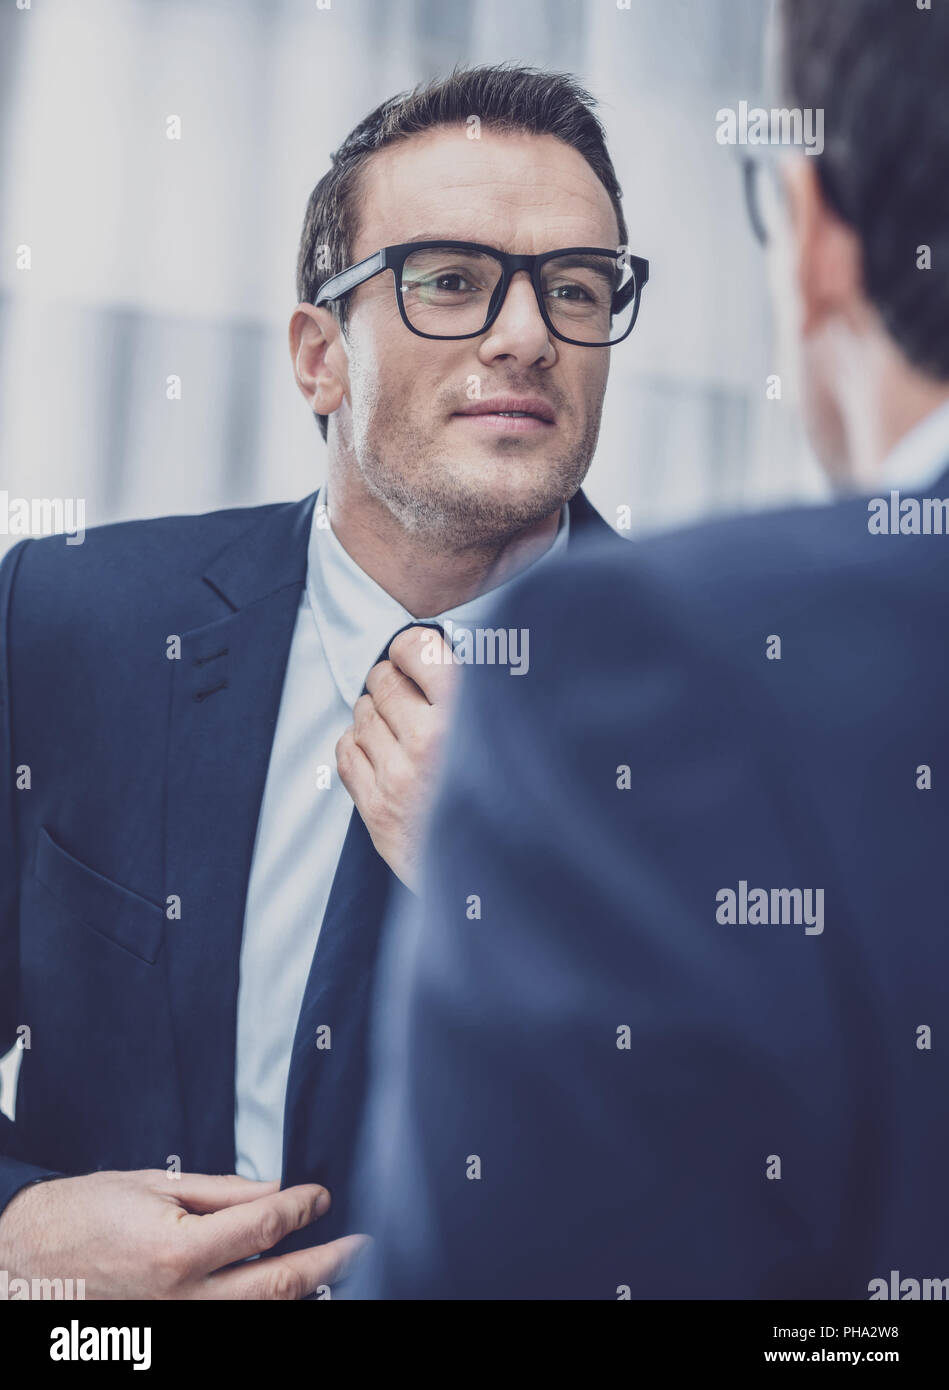 Handsome office worker going to job - Stock Image